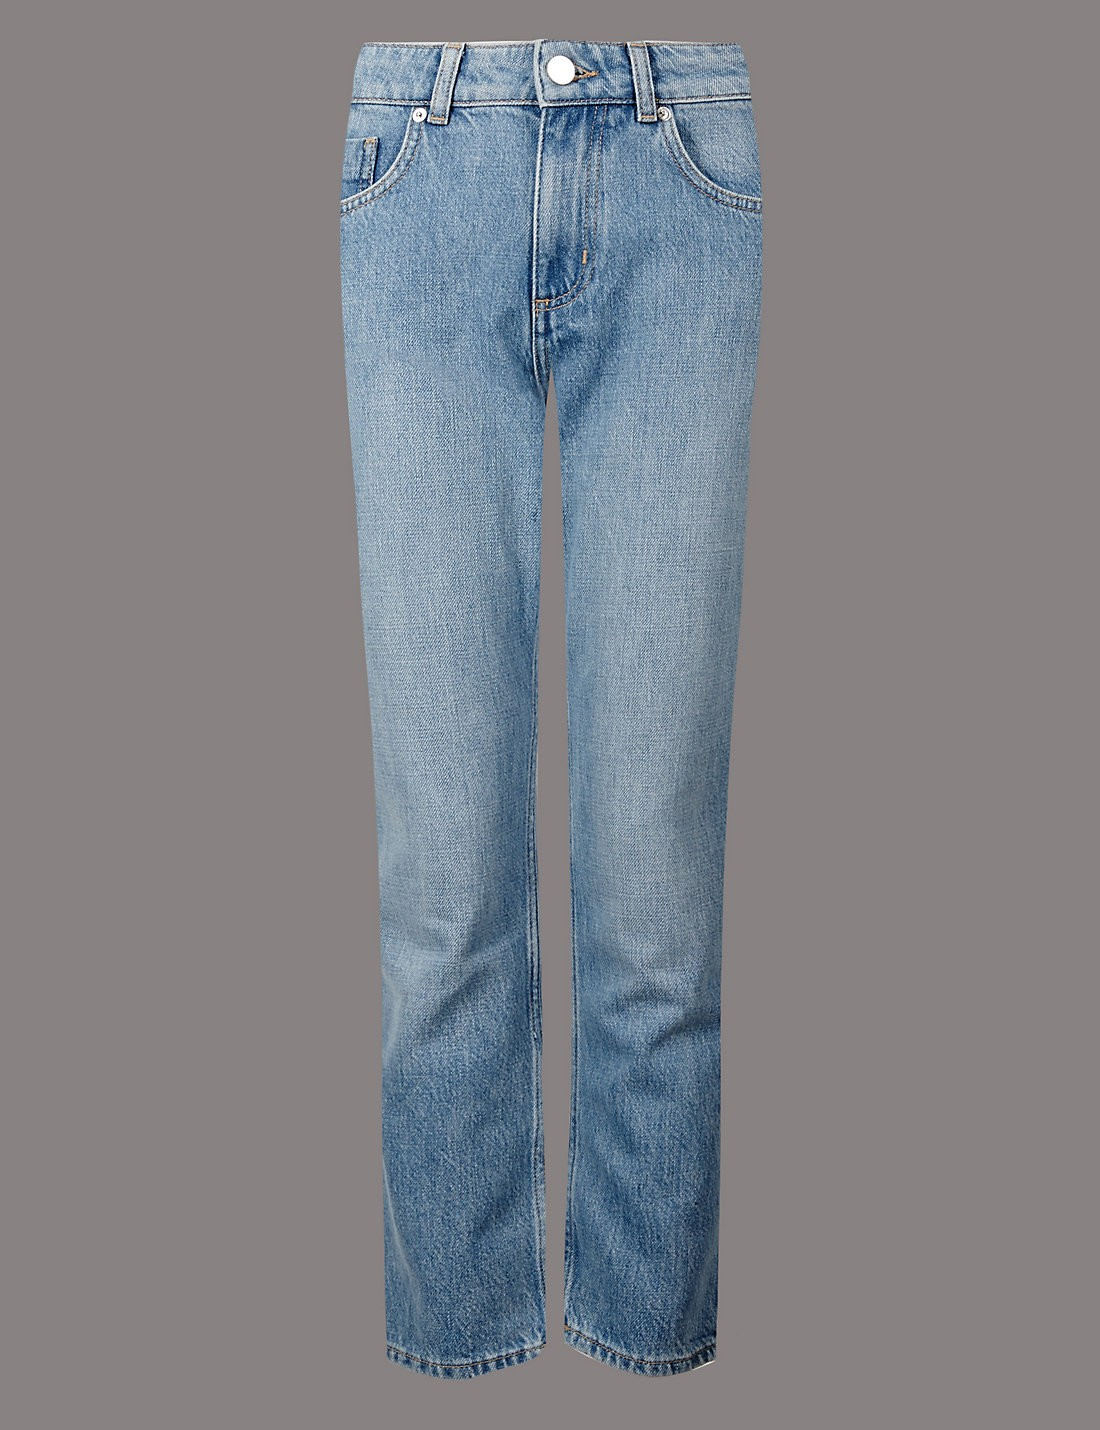 Orta Belli Straight Cropped Jean Pantolon